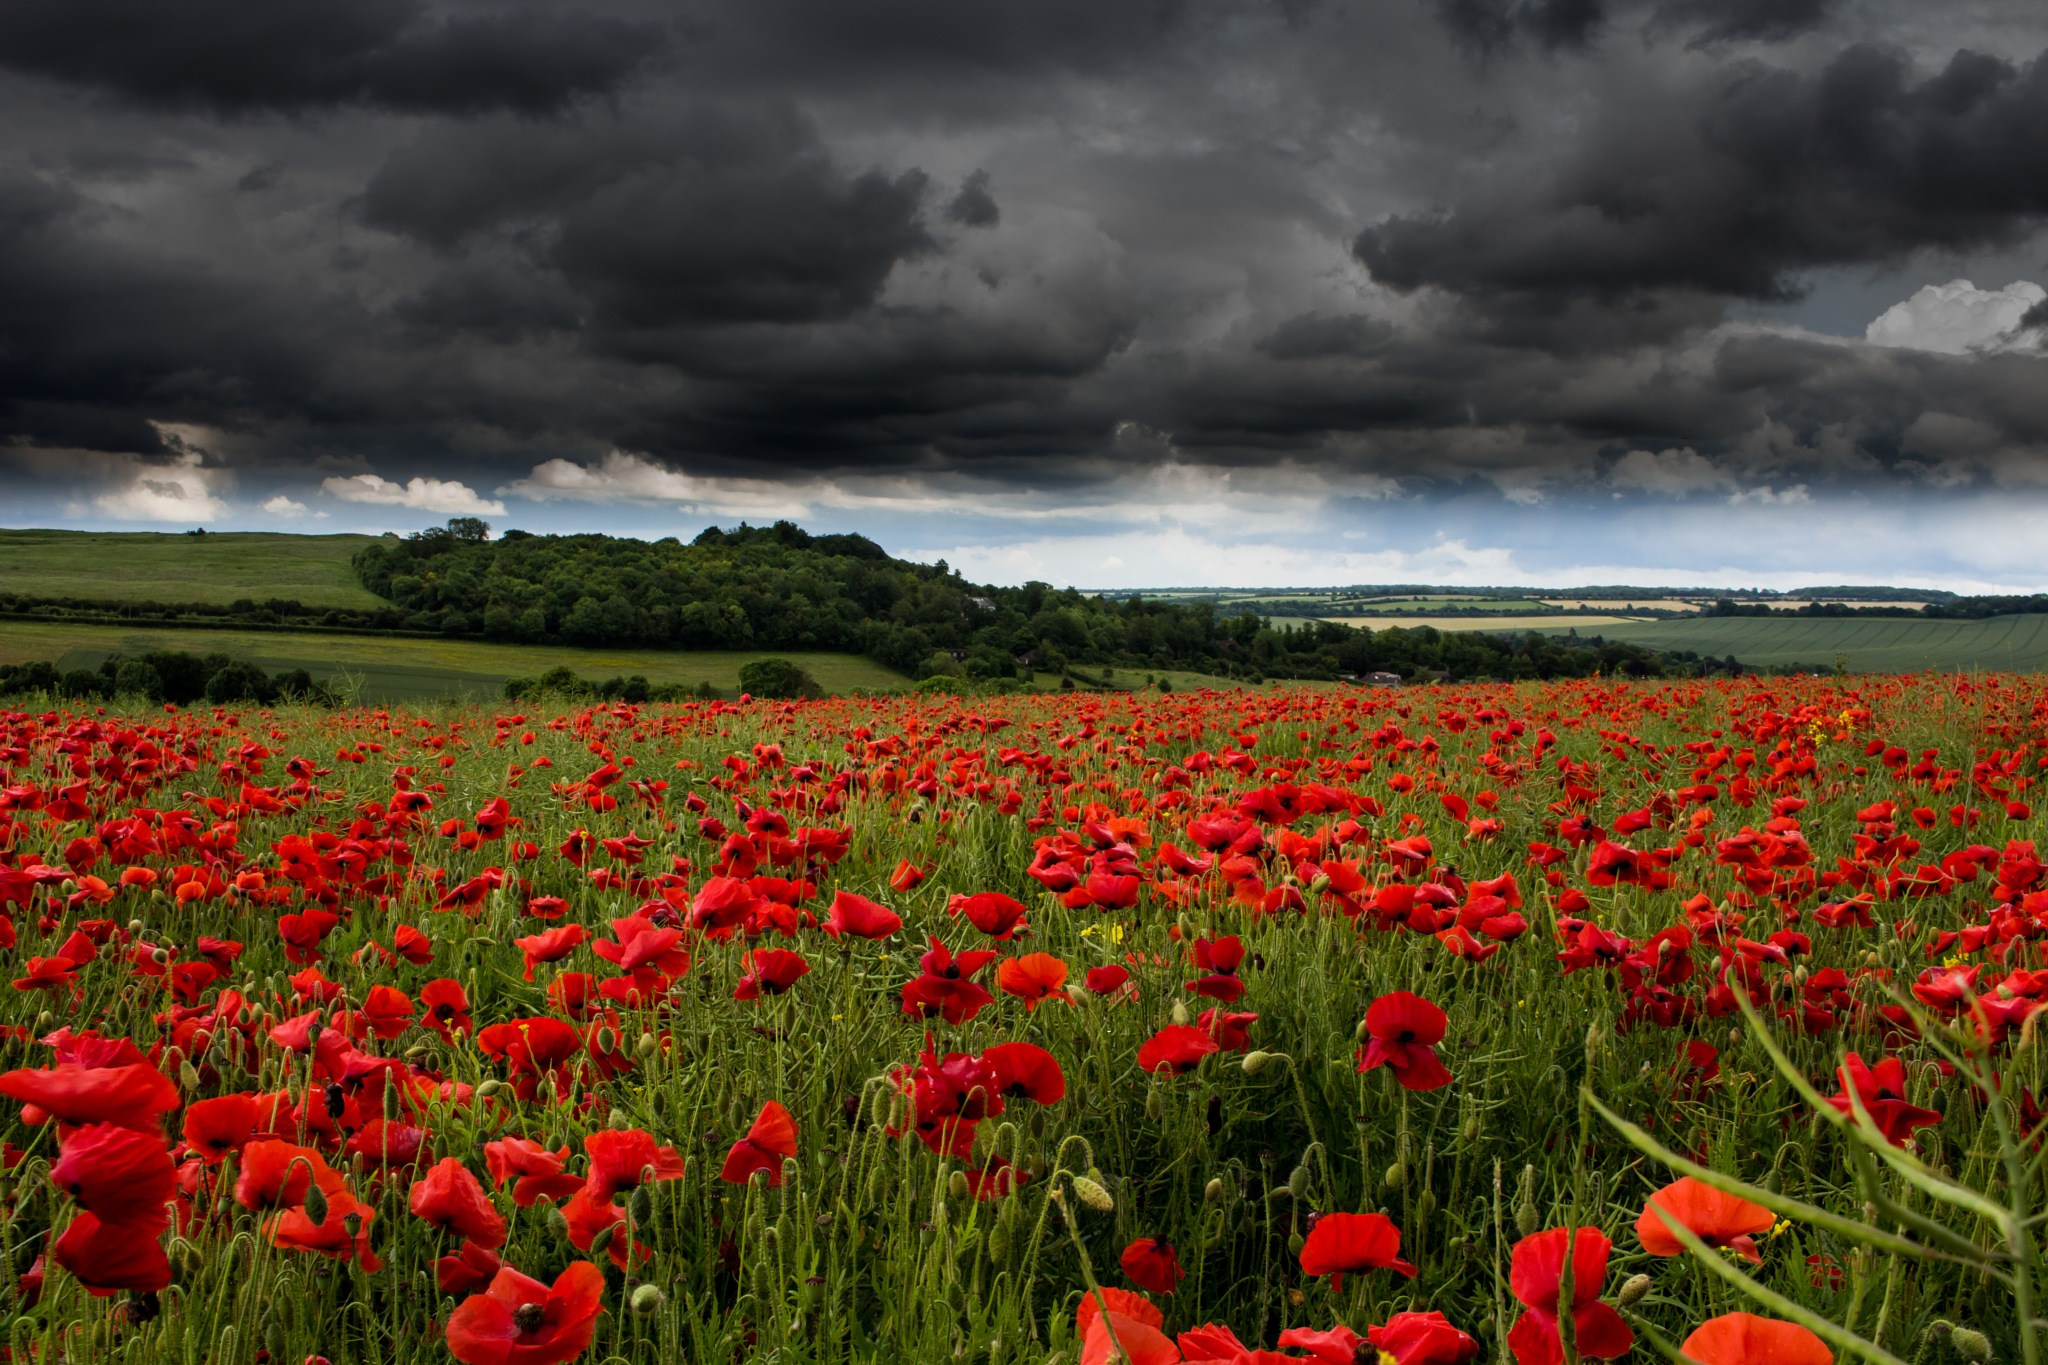 The Poppy Fields by Photographer Gino Cinganelli